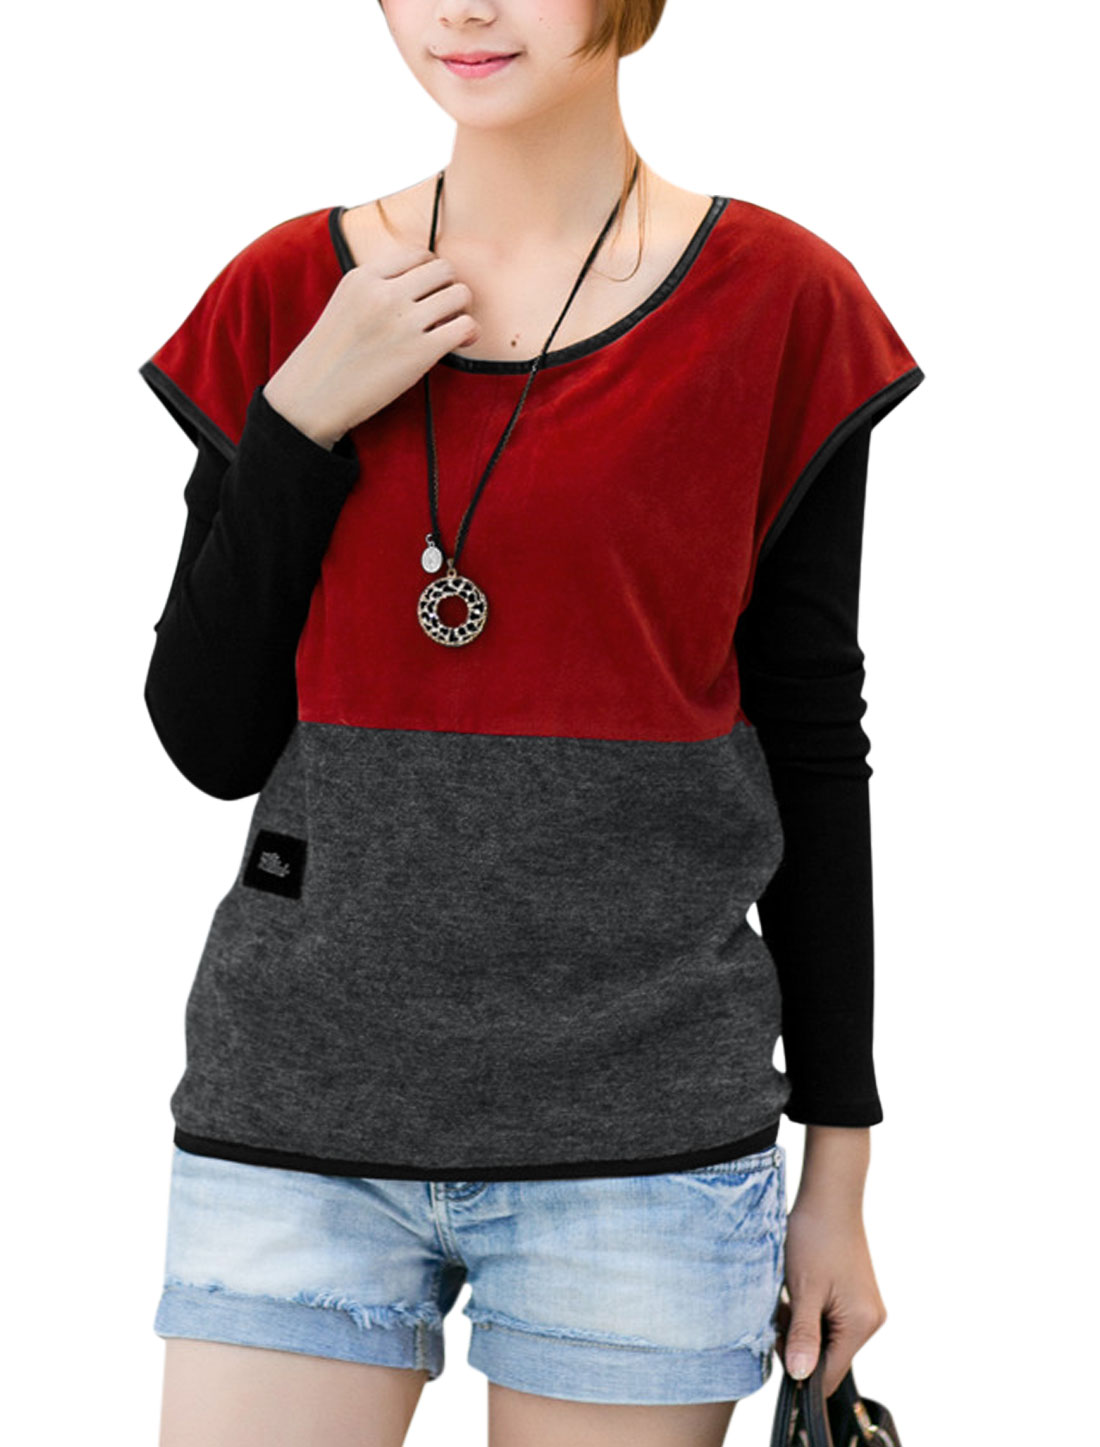 Lady Long Sleeve Layered Shirts Colorblock T-Shirt Red Dark Gray S